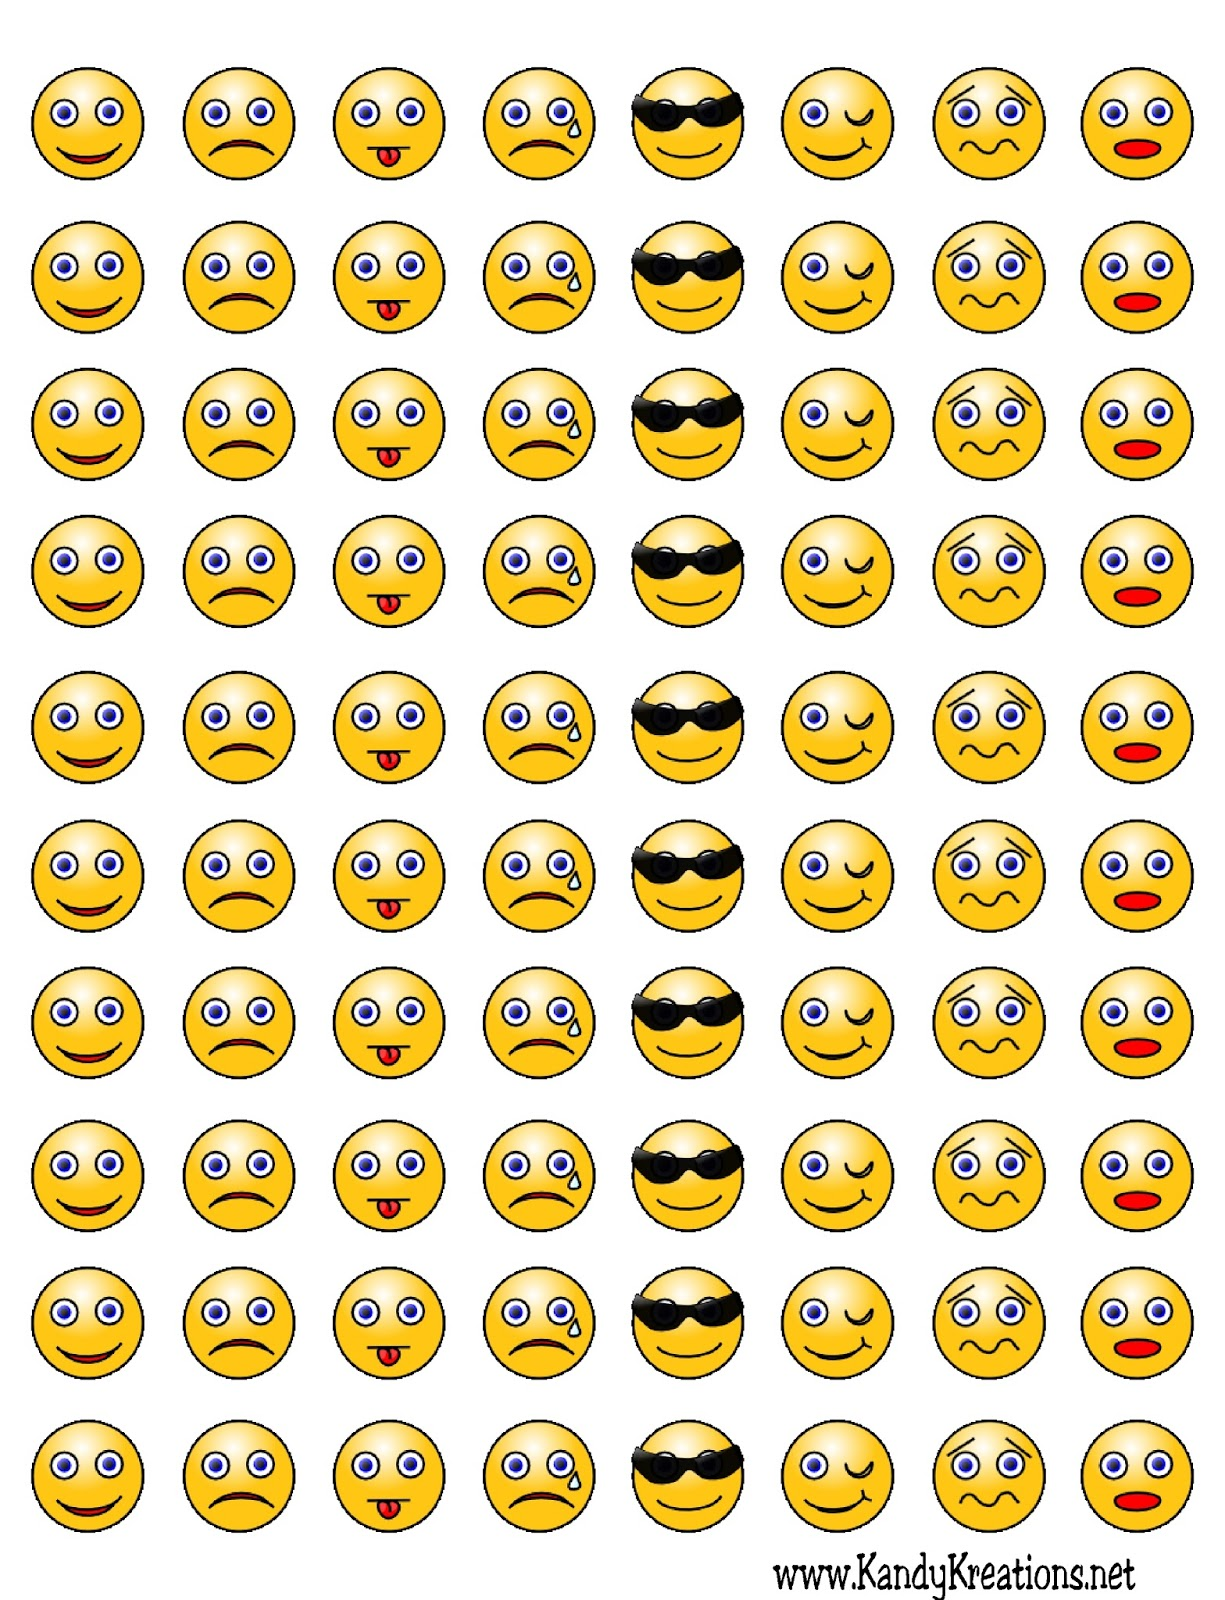 Gargantuan image for printable emoticons free